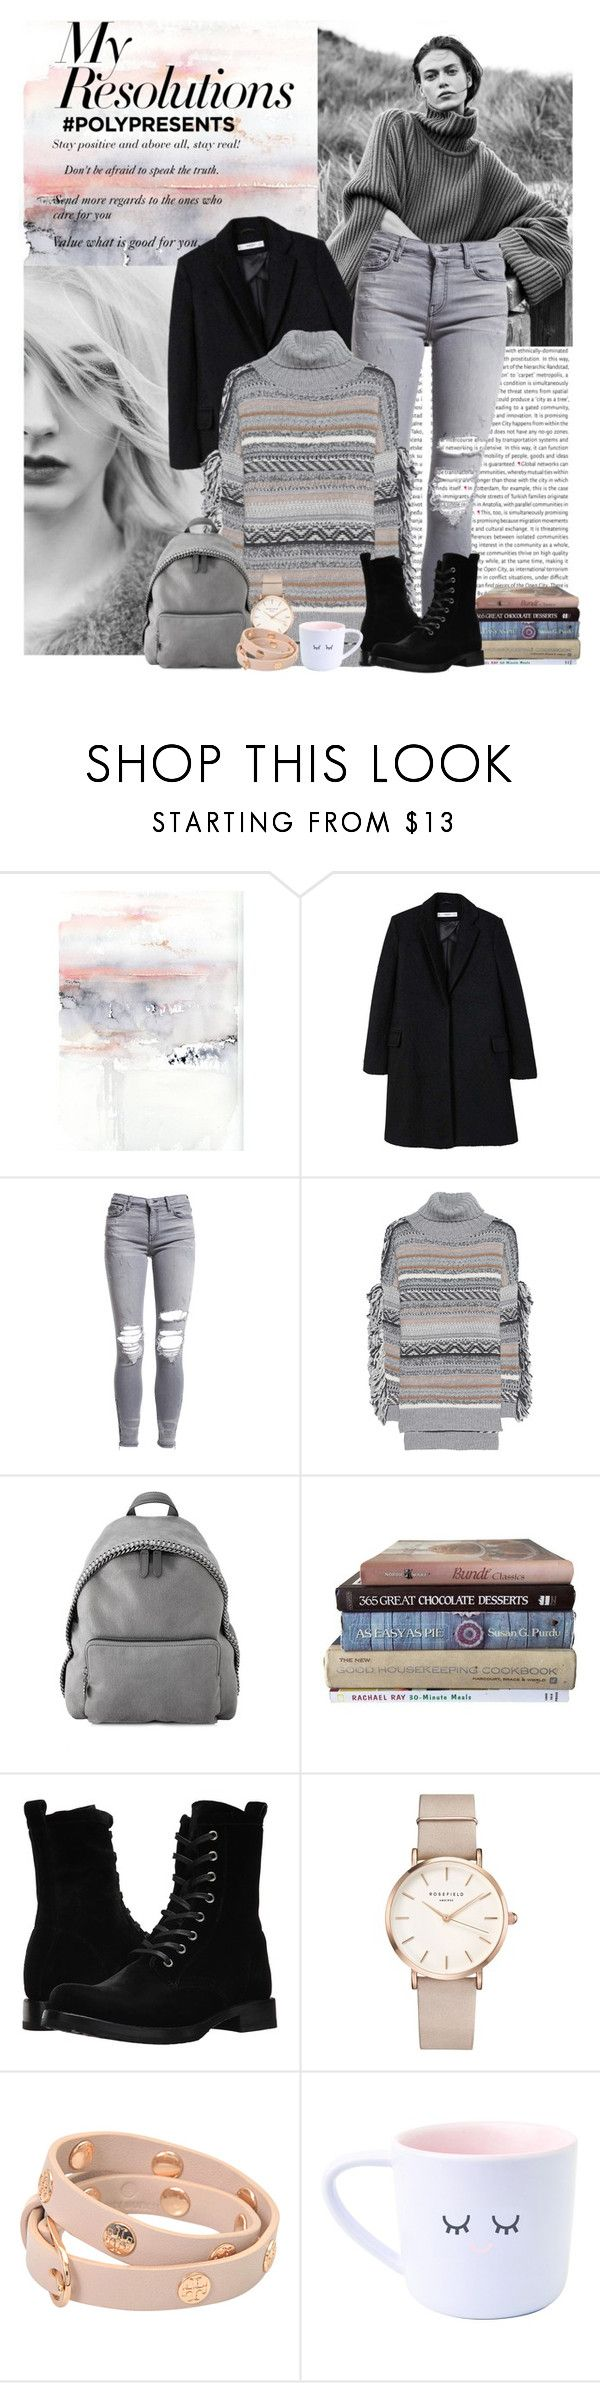 """""""#PolyPresents: New Year's Resolutions"""" by himbeerkind ❤ liked on Polyvore featuring Oris, MANGO, AMIRI, Lala Berlin, STELLA McCARTNEY, Frye, ROSEFIELD, Tory Burch, contestentry and polyPresents"""